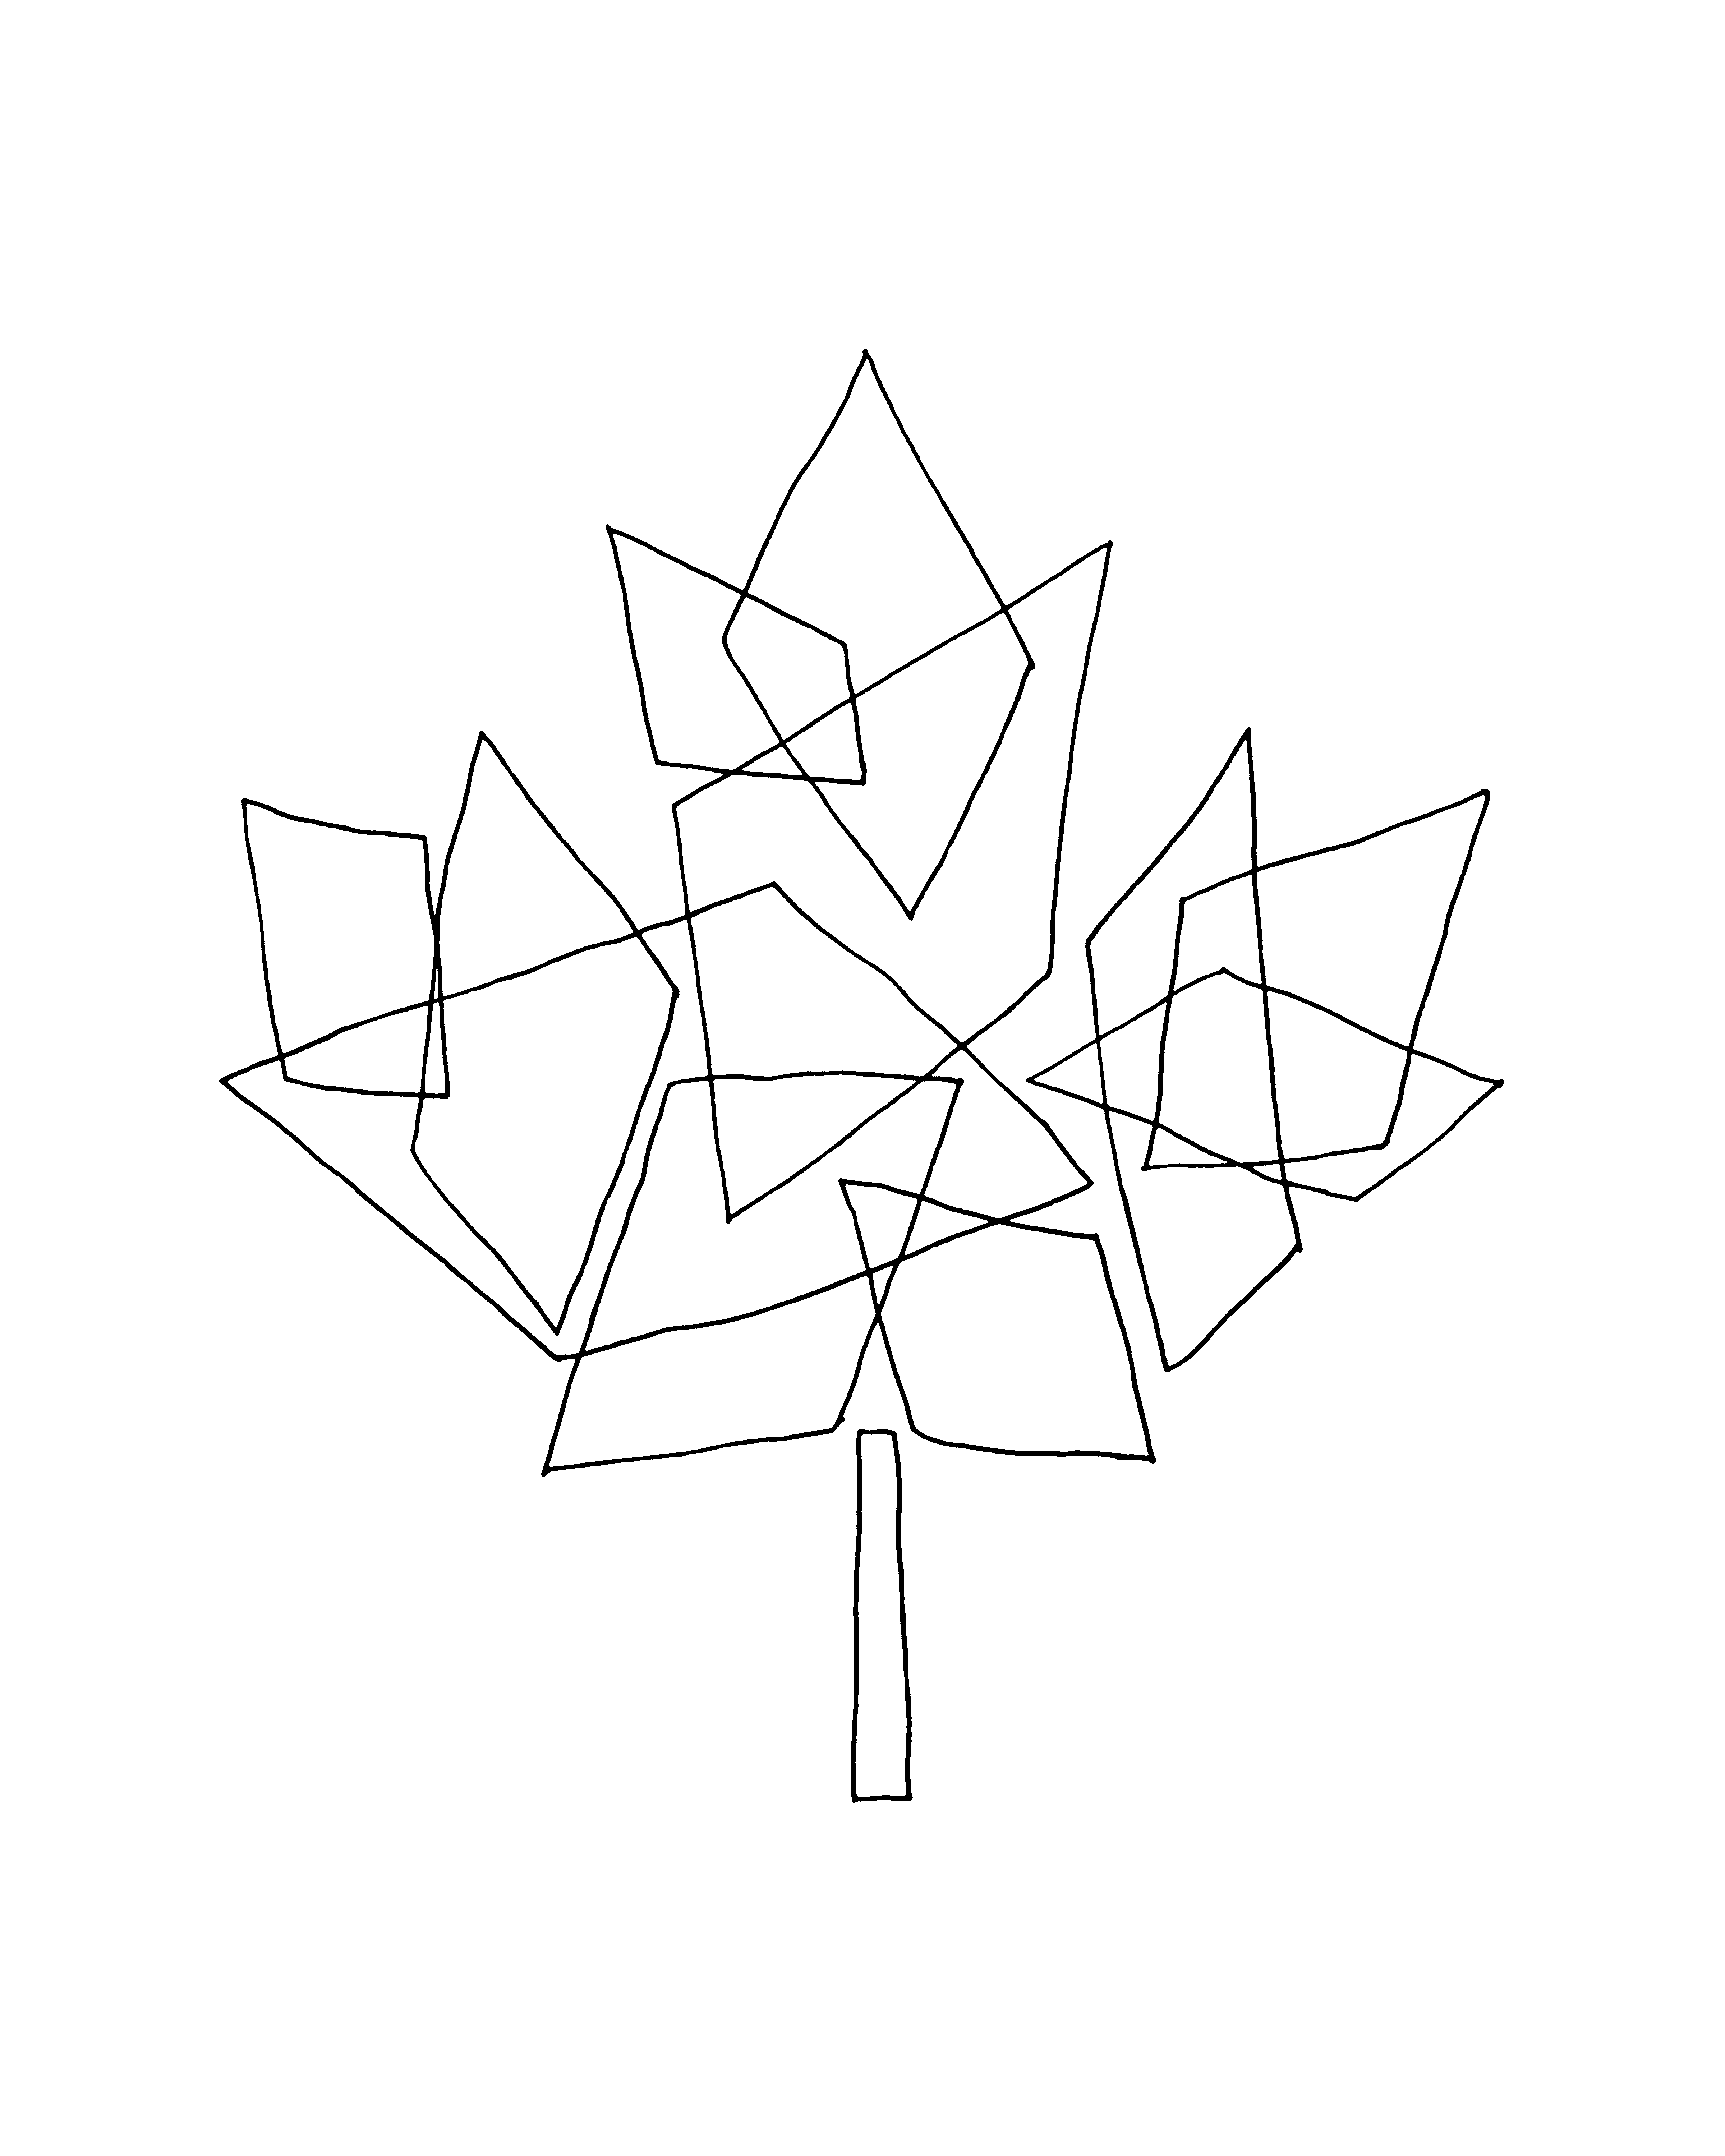 4800x6000 10000 Pages Canadian Maple Leaf Colouring Page 5870